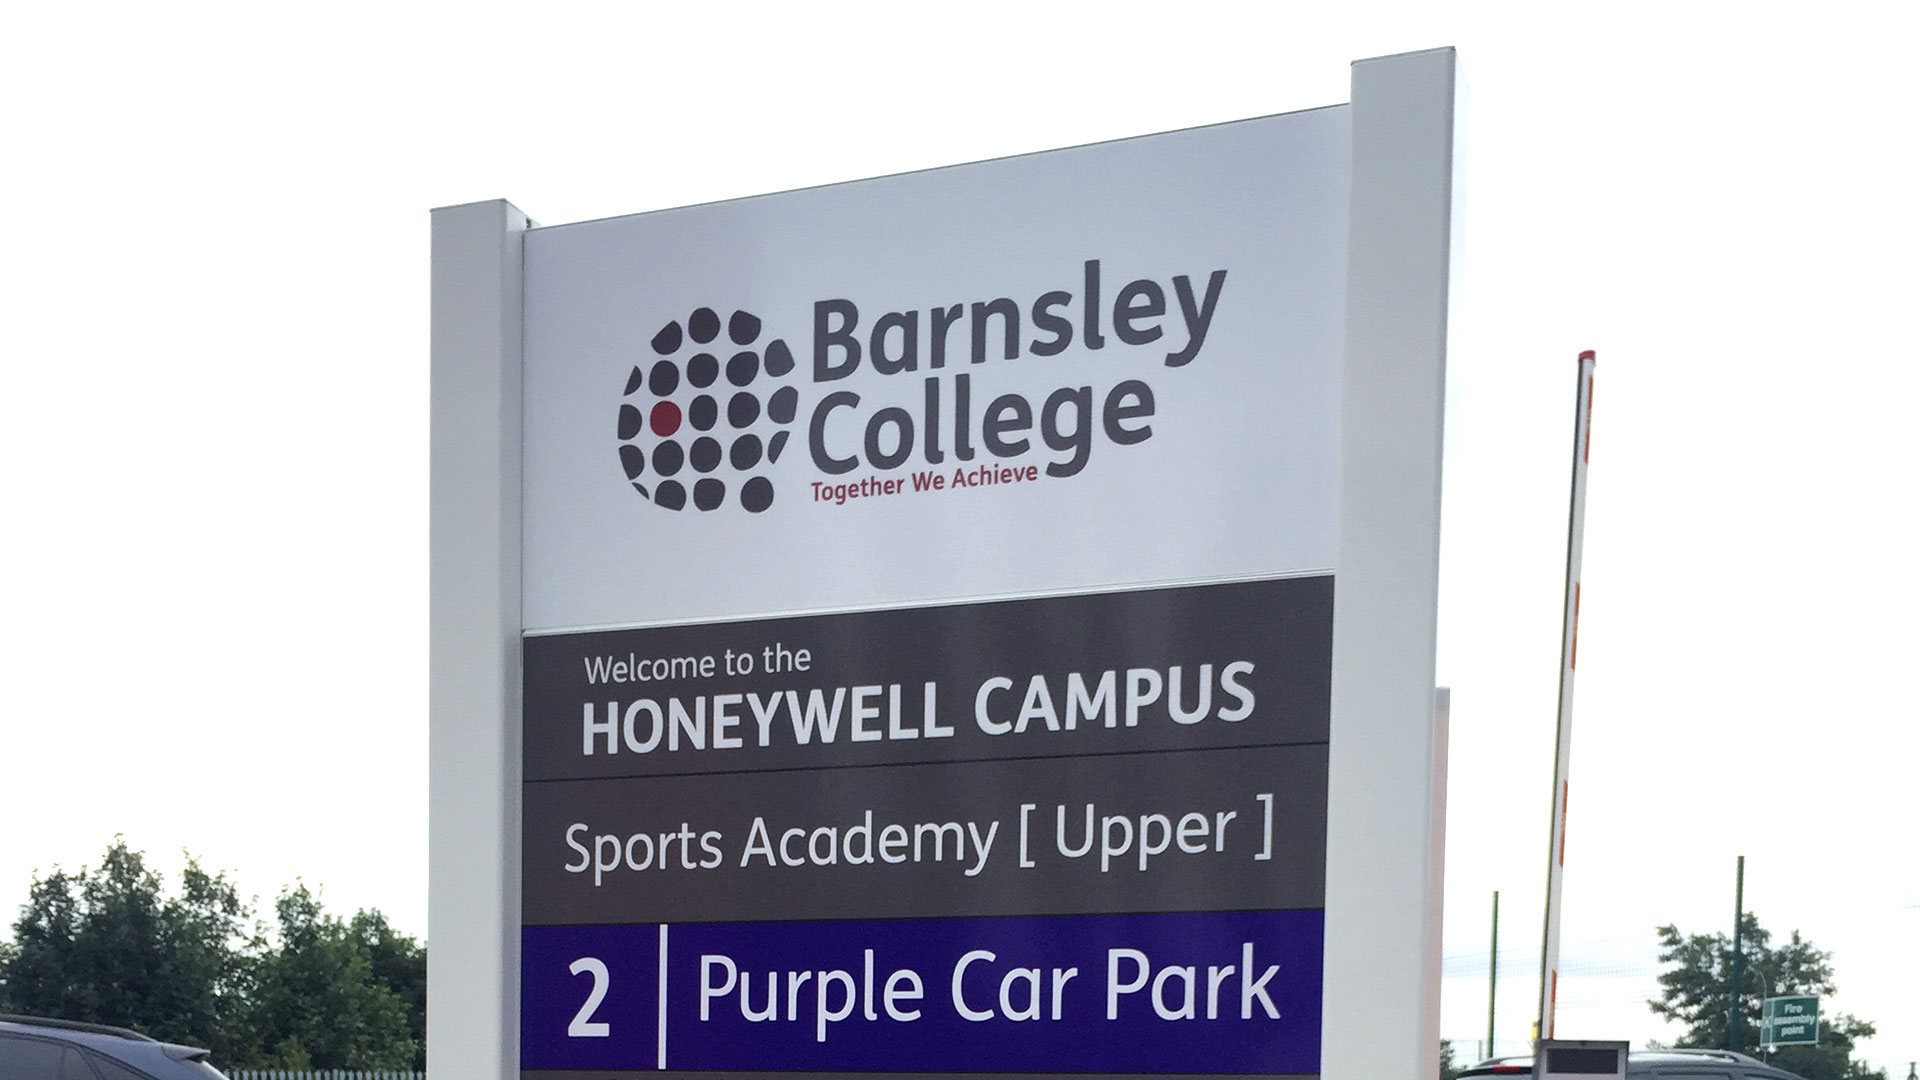 SCHOOL, ACADEMY AND CAMPUS SIGNAGE